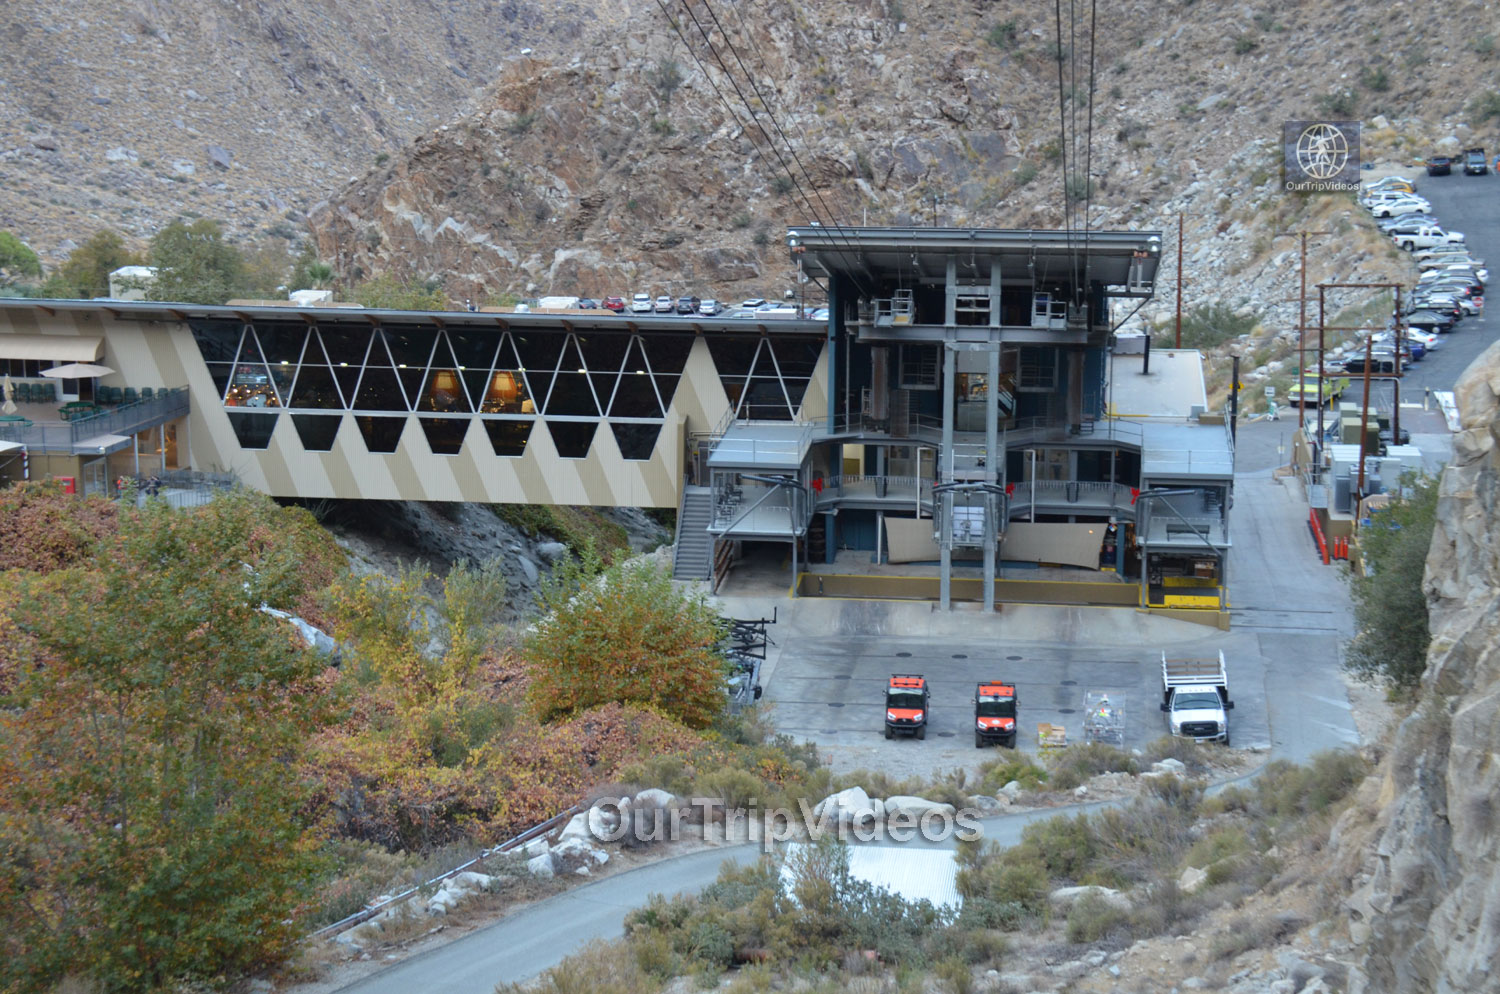 Aerial Tramway, Palm Springs, CA, USA - Picture 18 of 25